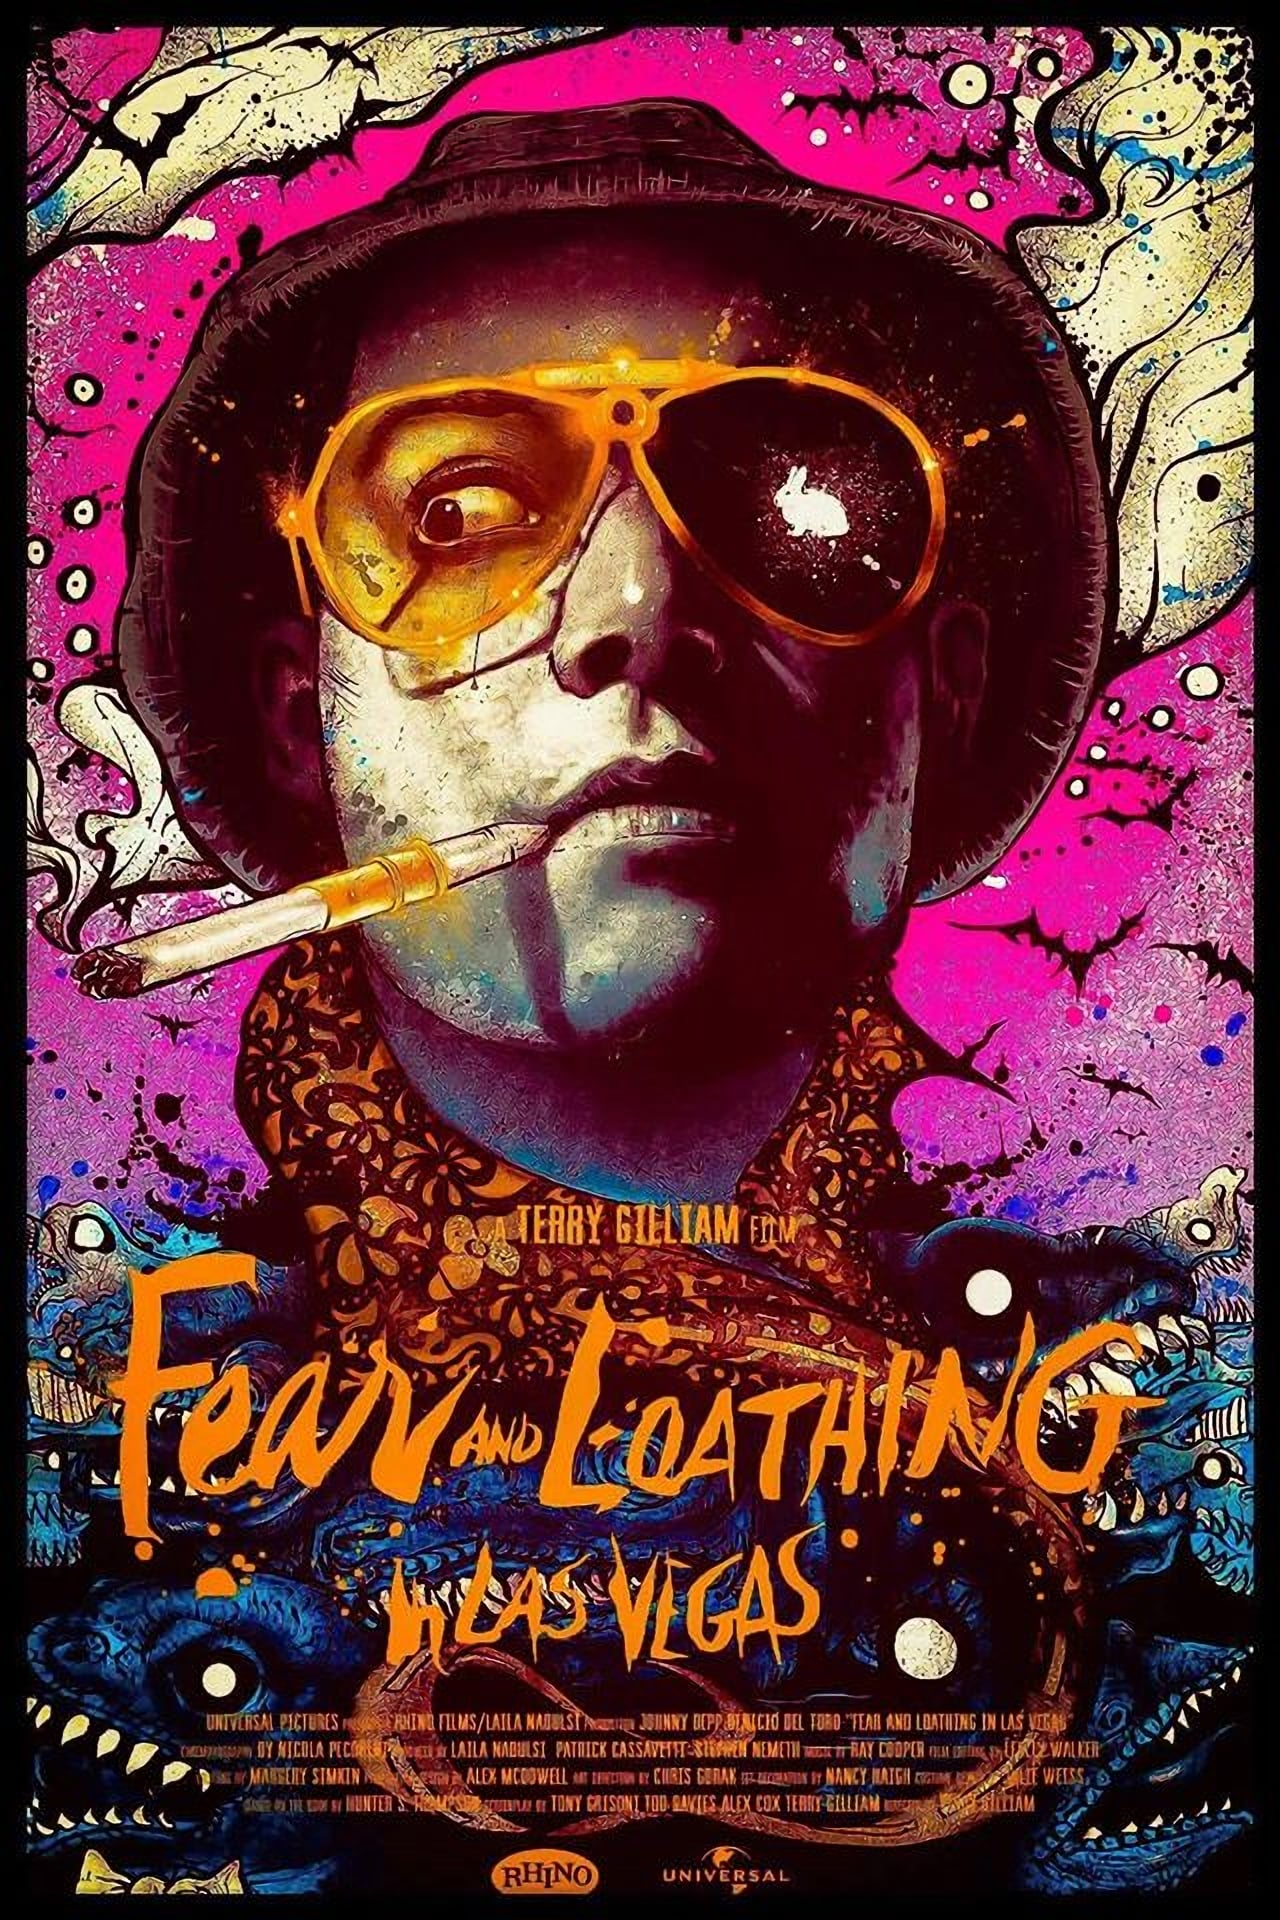 fear loathing in las vegas Fear and loathing in las vegas (1998) full movie online on fmovies watch fear and loathing in las vegas (1998) online free in hd - the hallucinogenic.